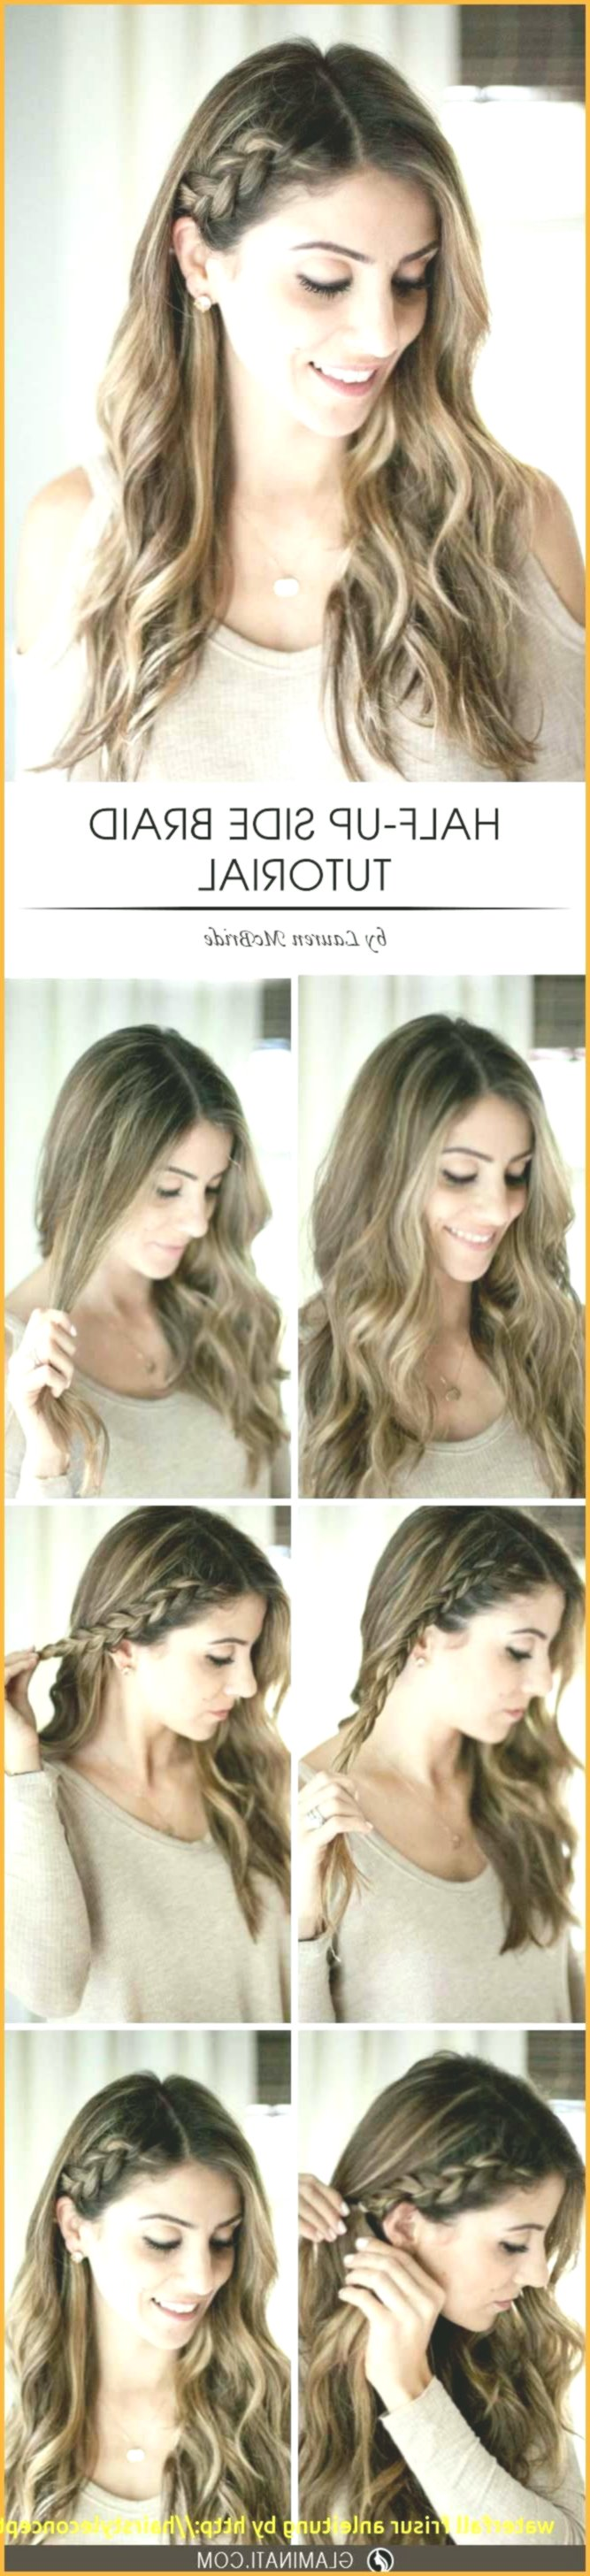 Lovely Hairstyles Fashion 2018 Ideas-Elegant Hairstyles Fashion 2018 Wall